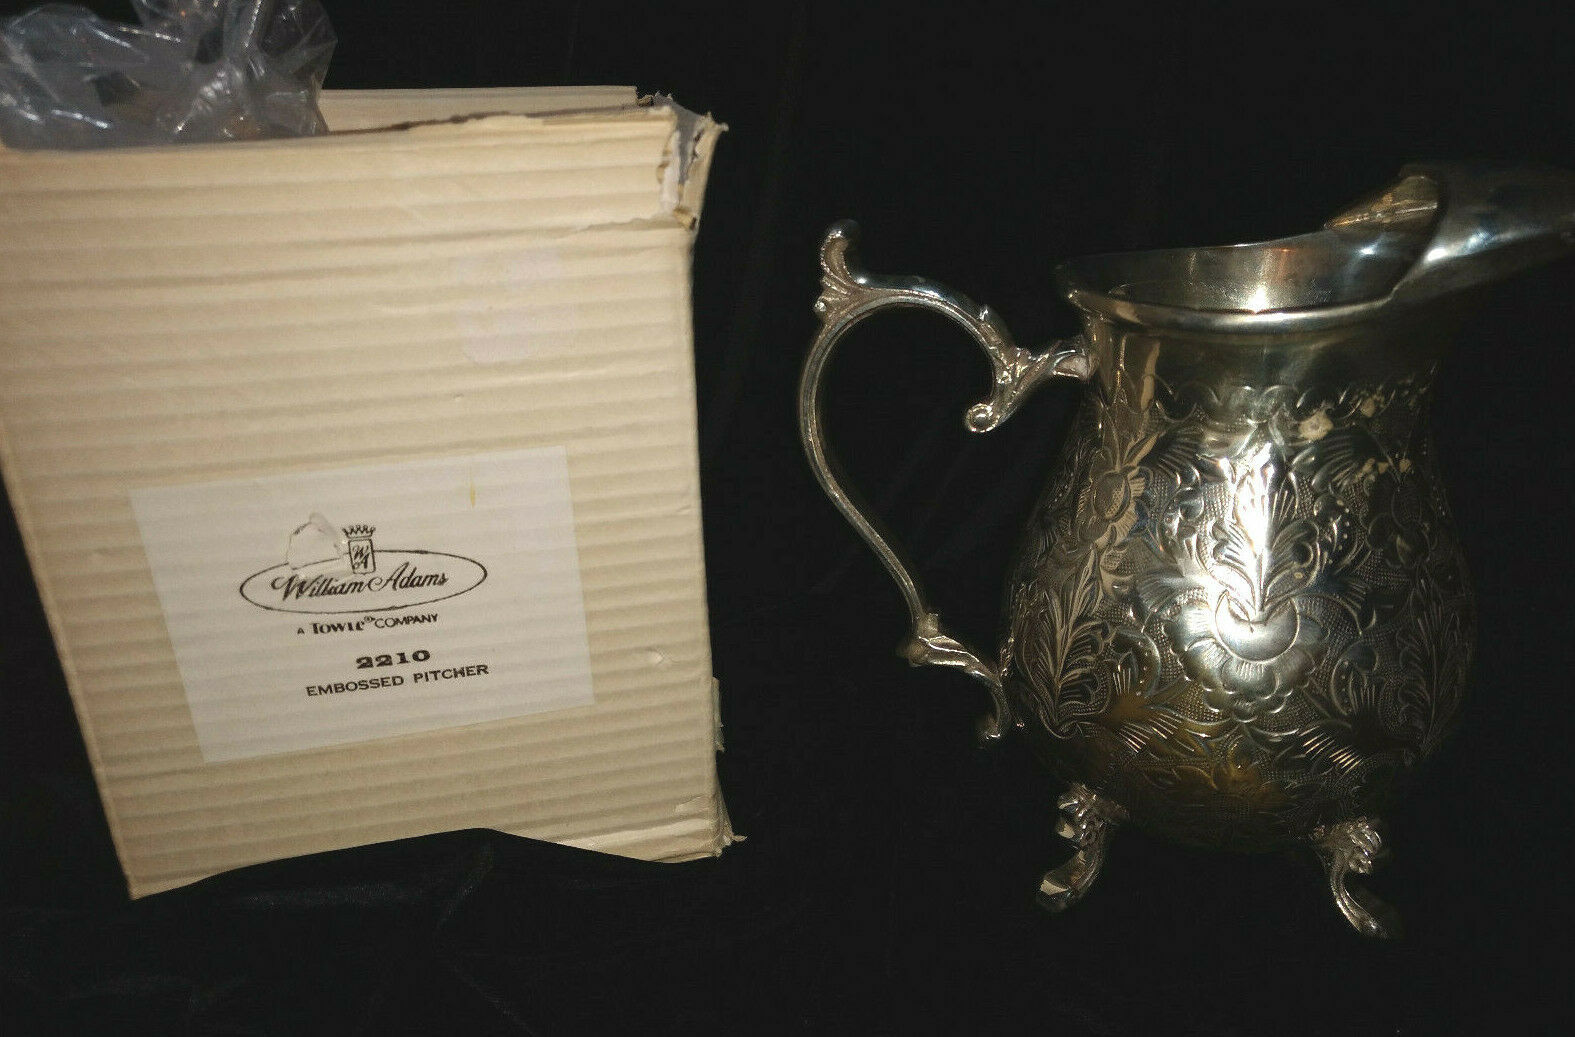 WILLIAM ADAMS A TOWLE COMPANY INDIA SILVERPLATE EMBOSSED PITCHER WITH BOX